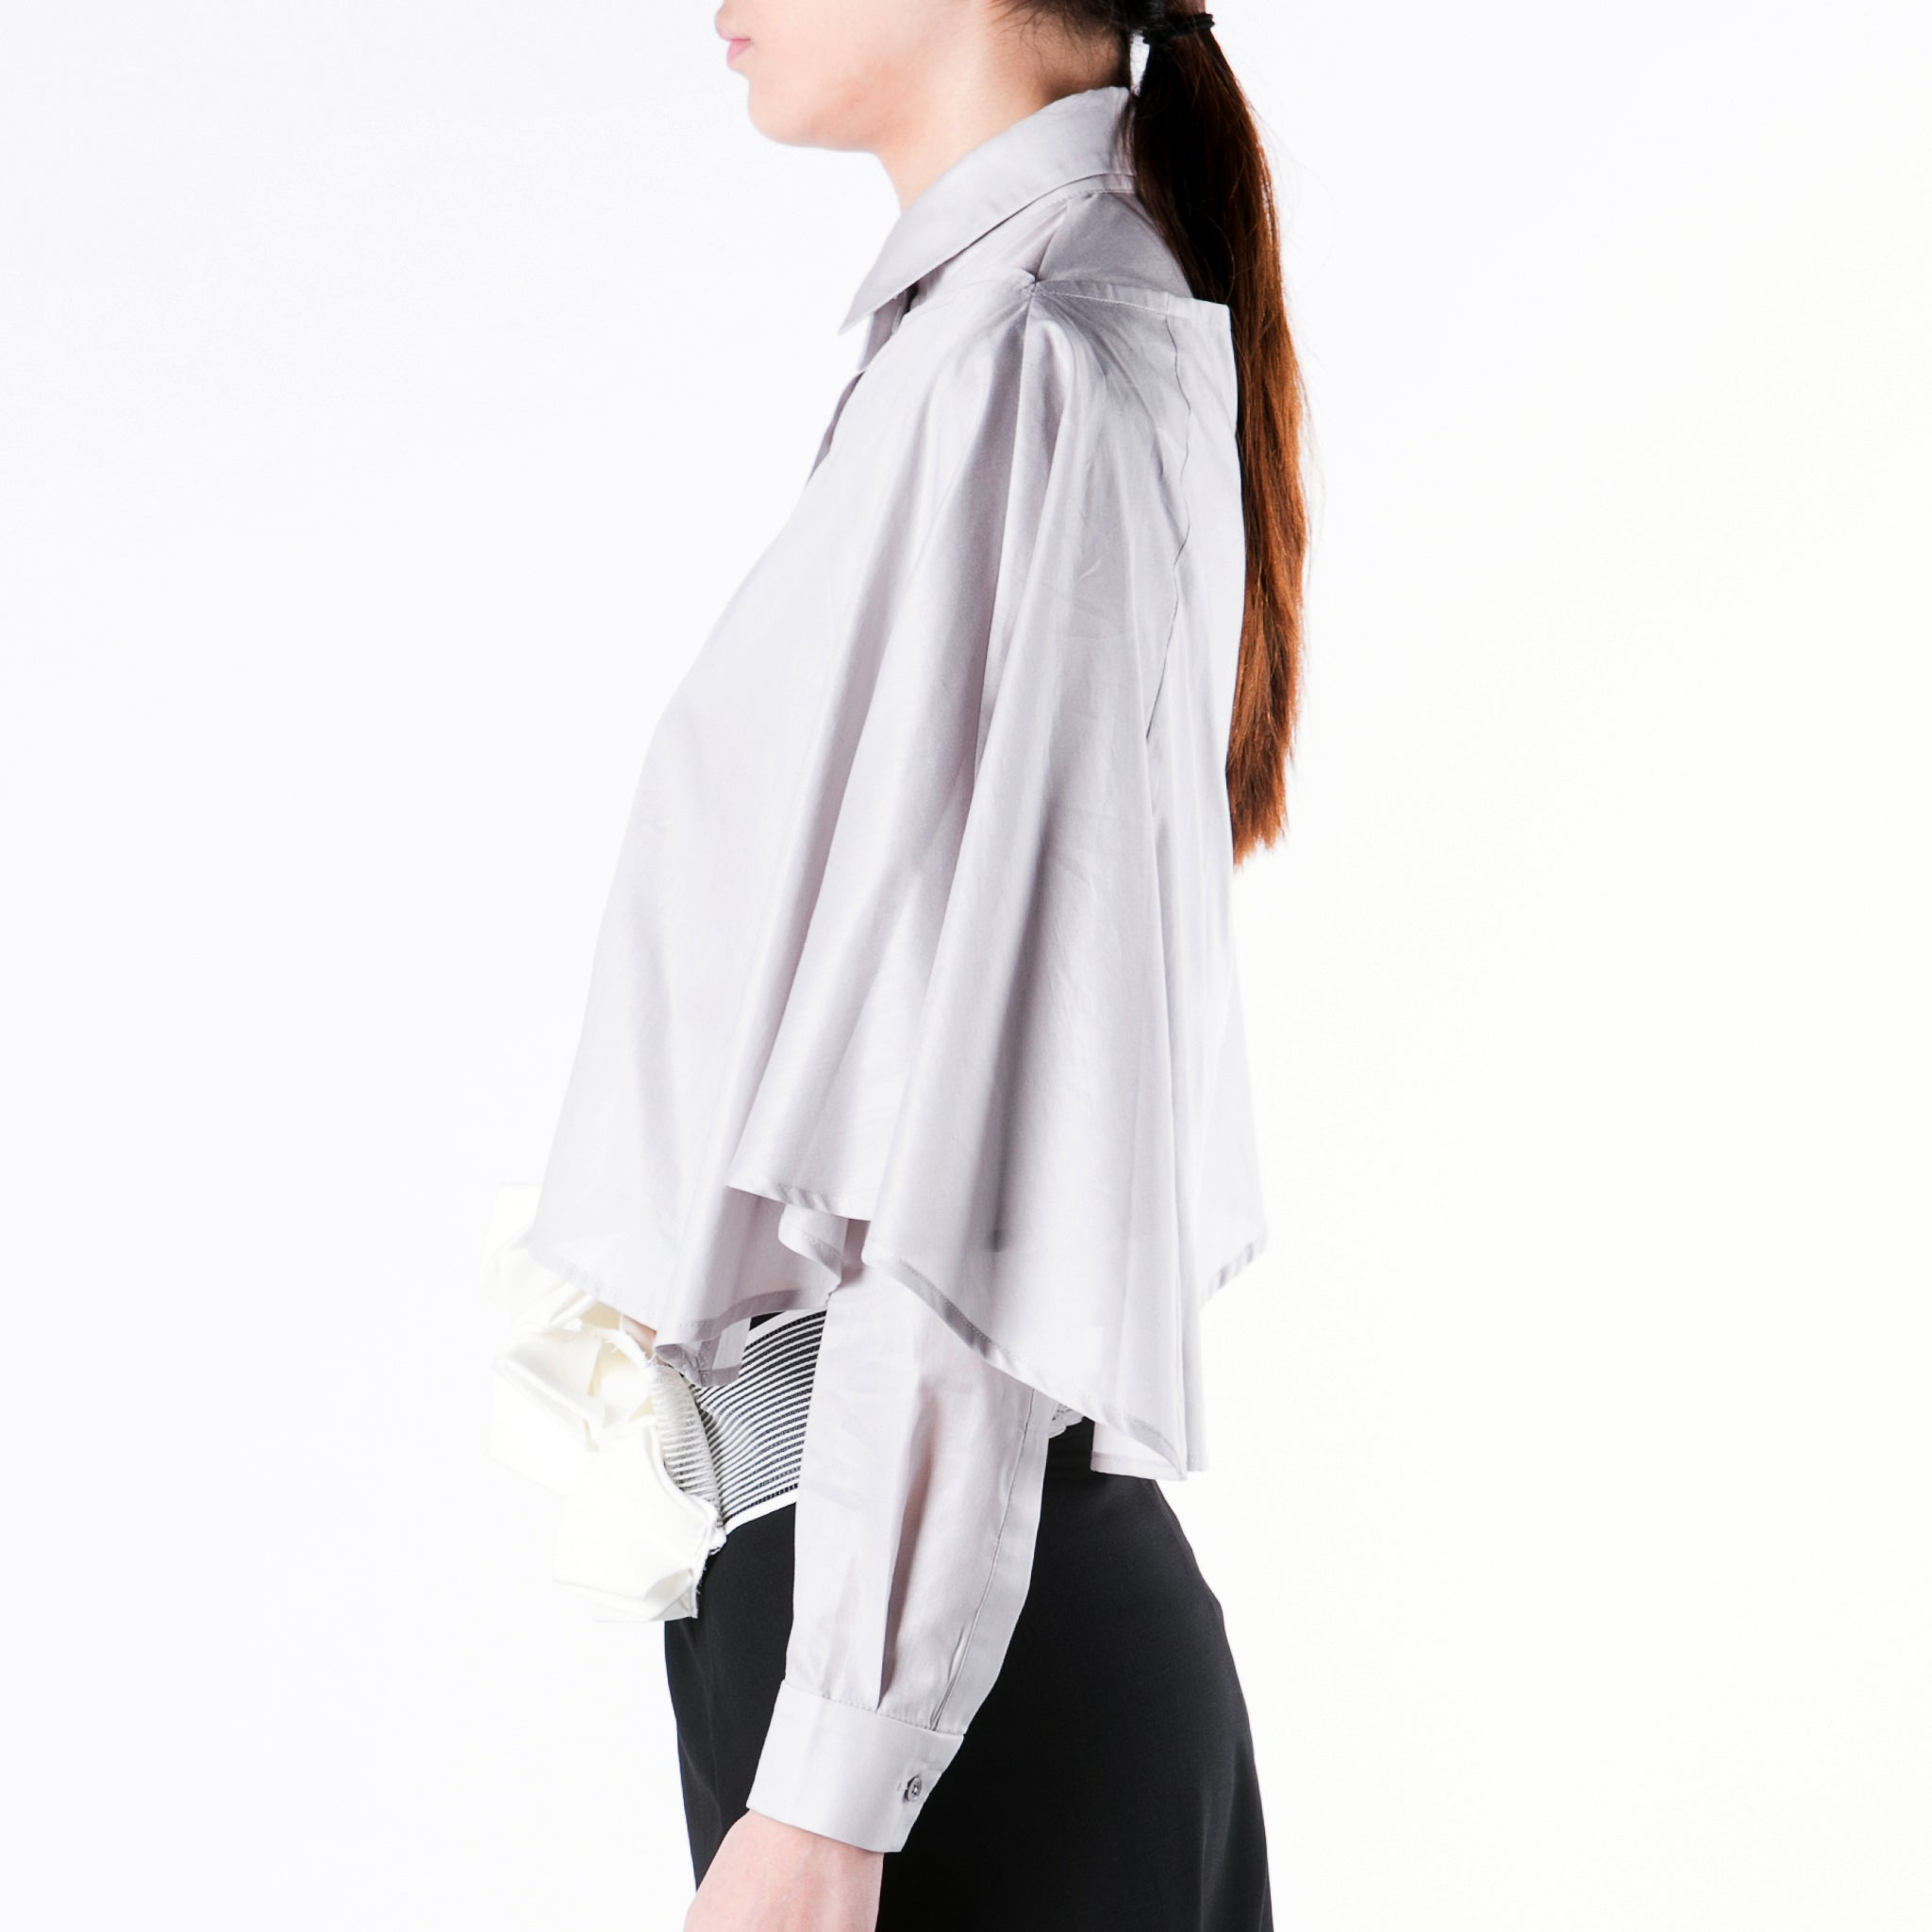 Shirt Cape - phenotypsetter, fashion designer label, unisex, women, accessories